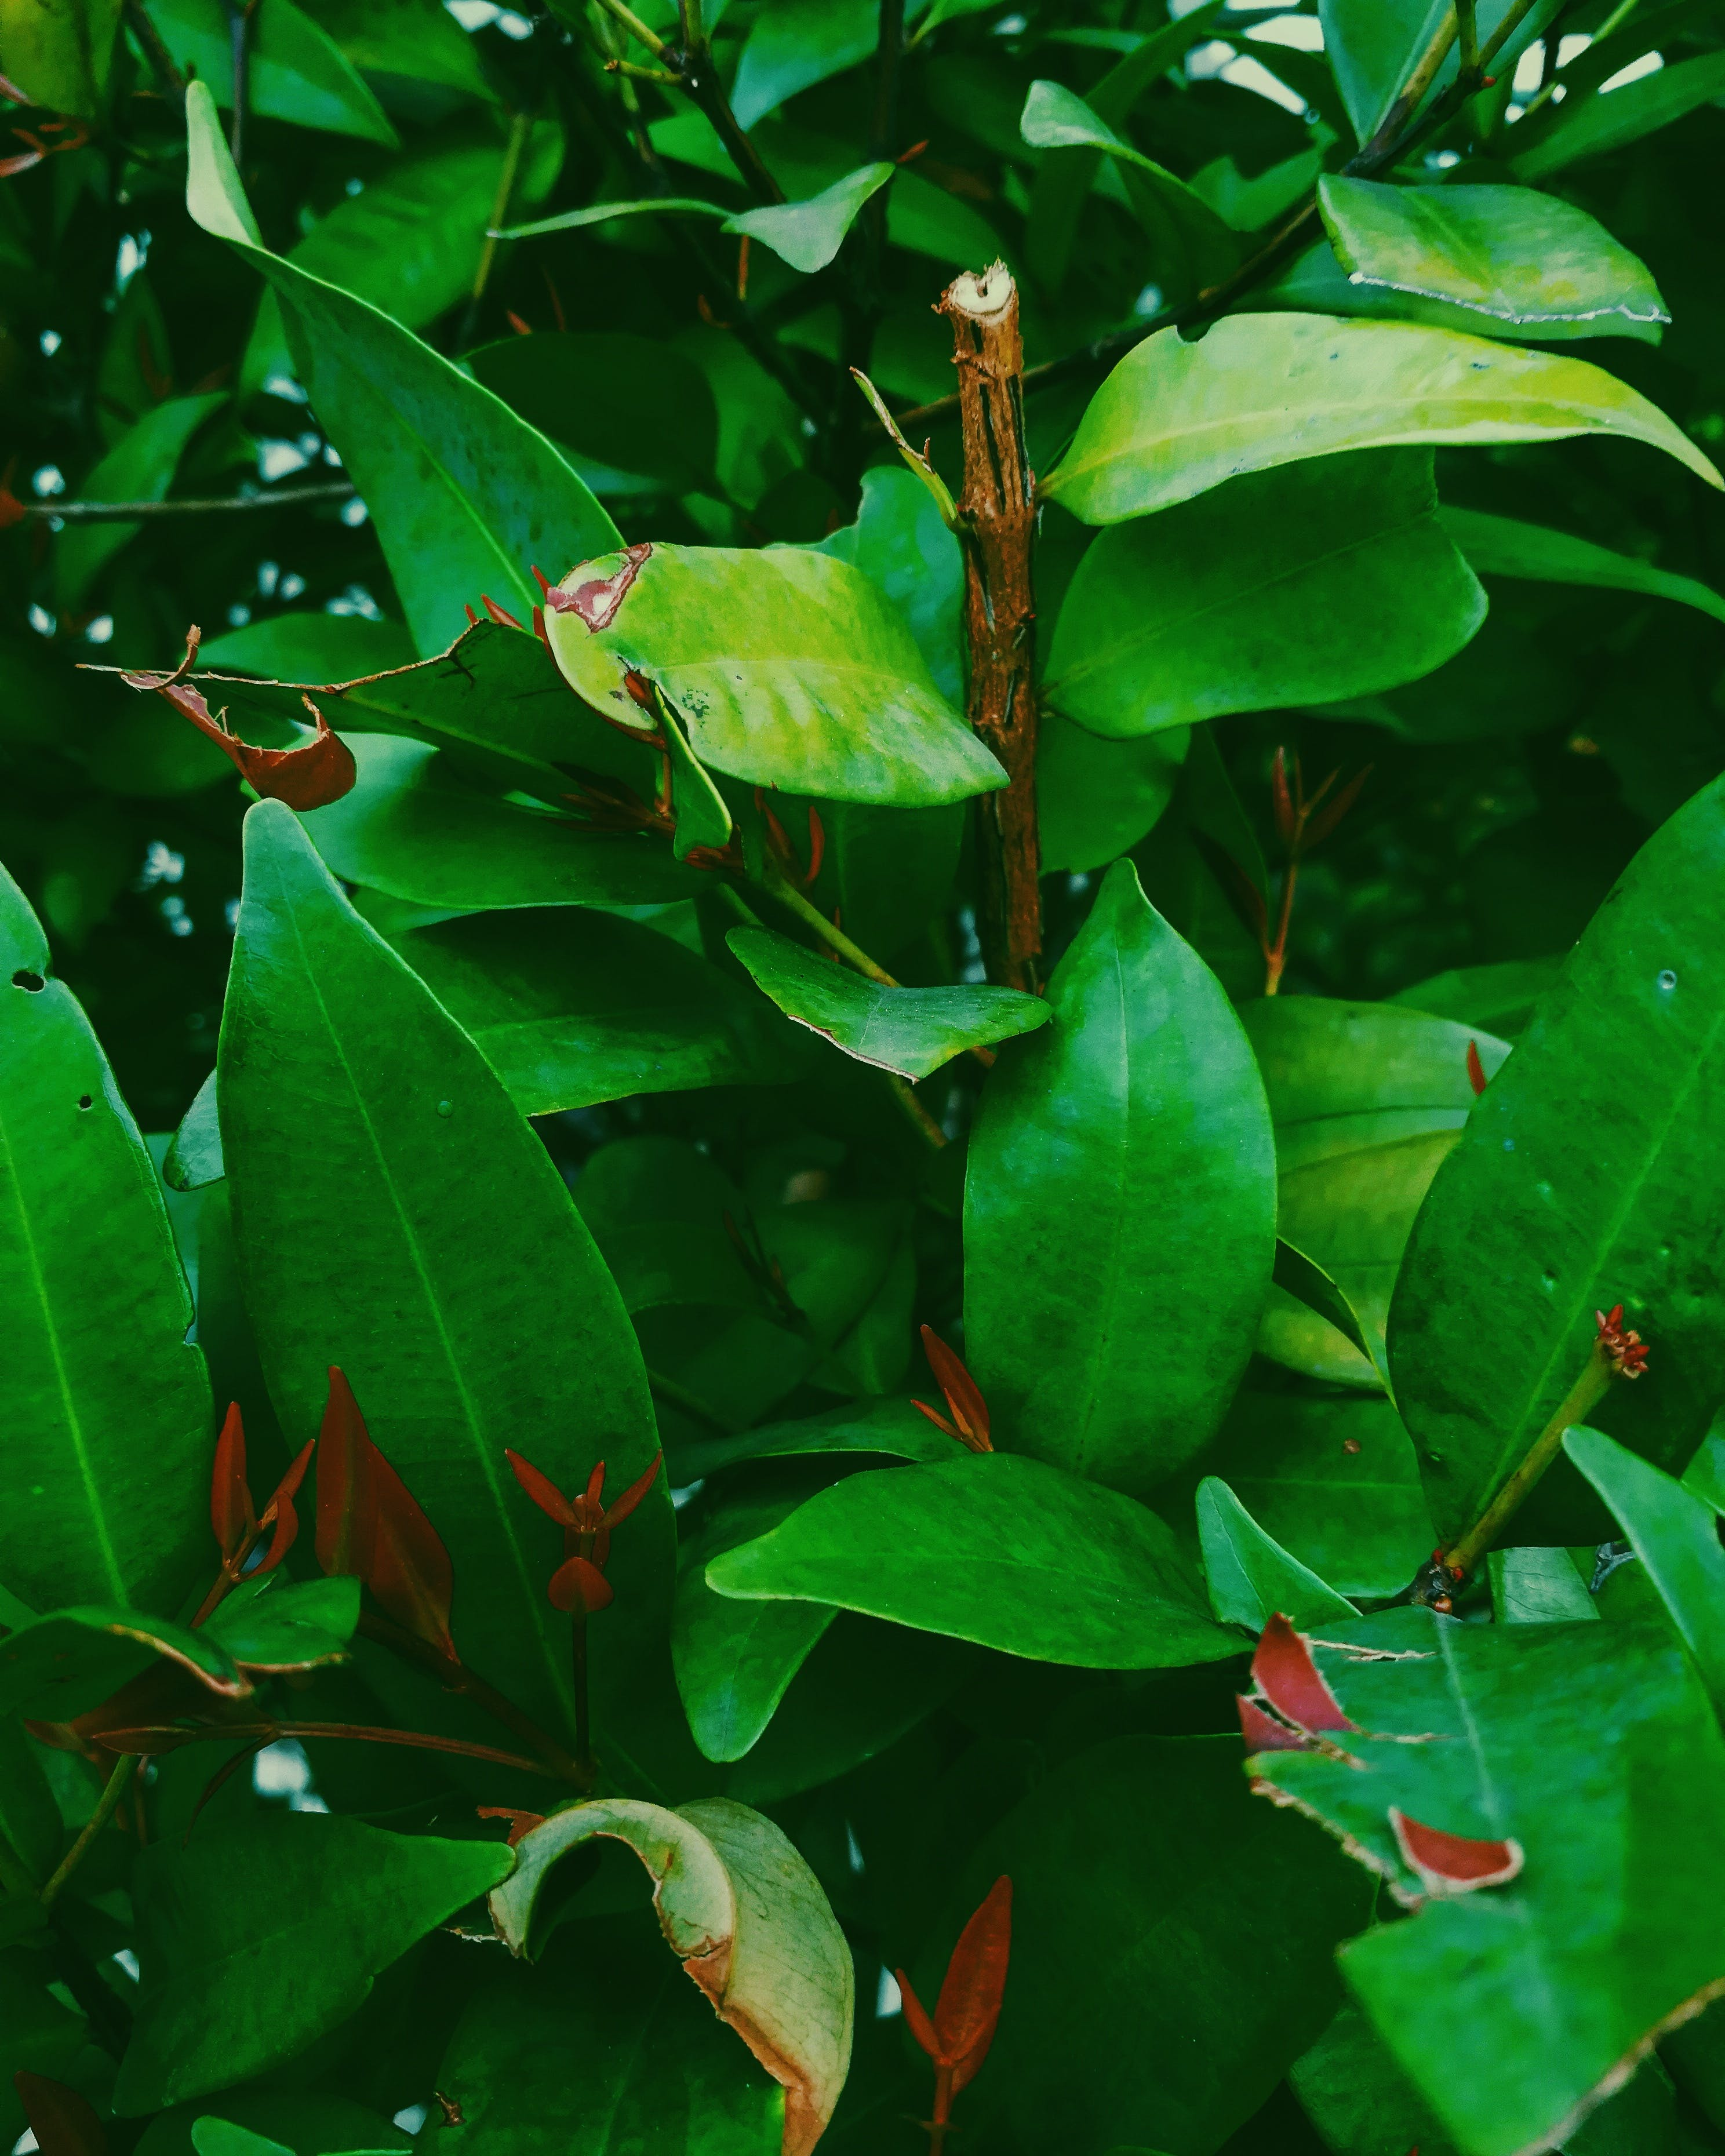 Green Leaf Plant With Brown Branch